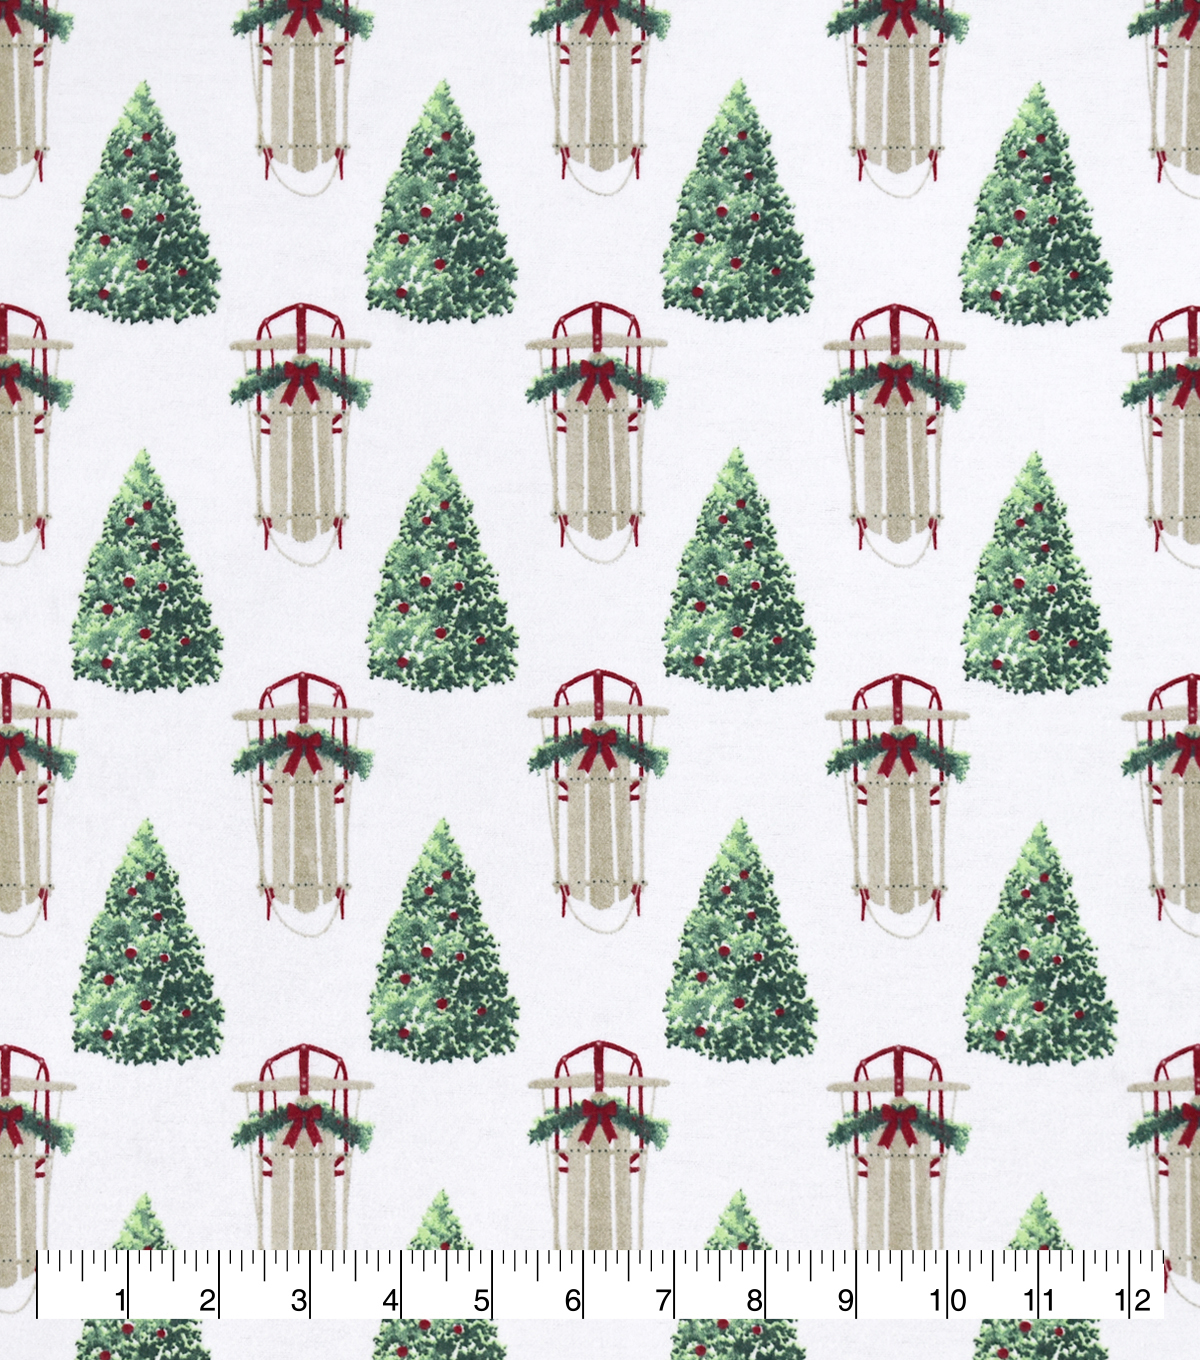 Snuggle Flannel Christmas Fabric-Sleighs & Trees